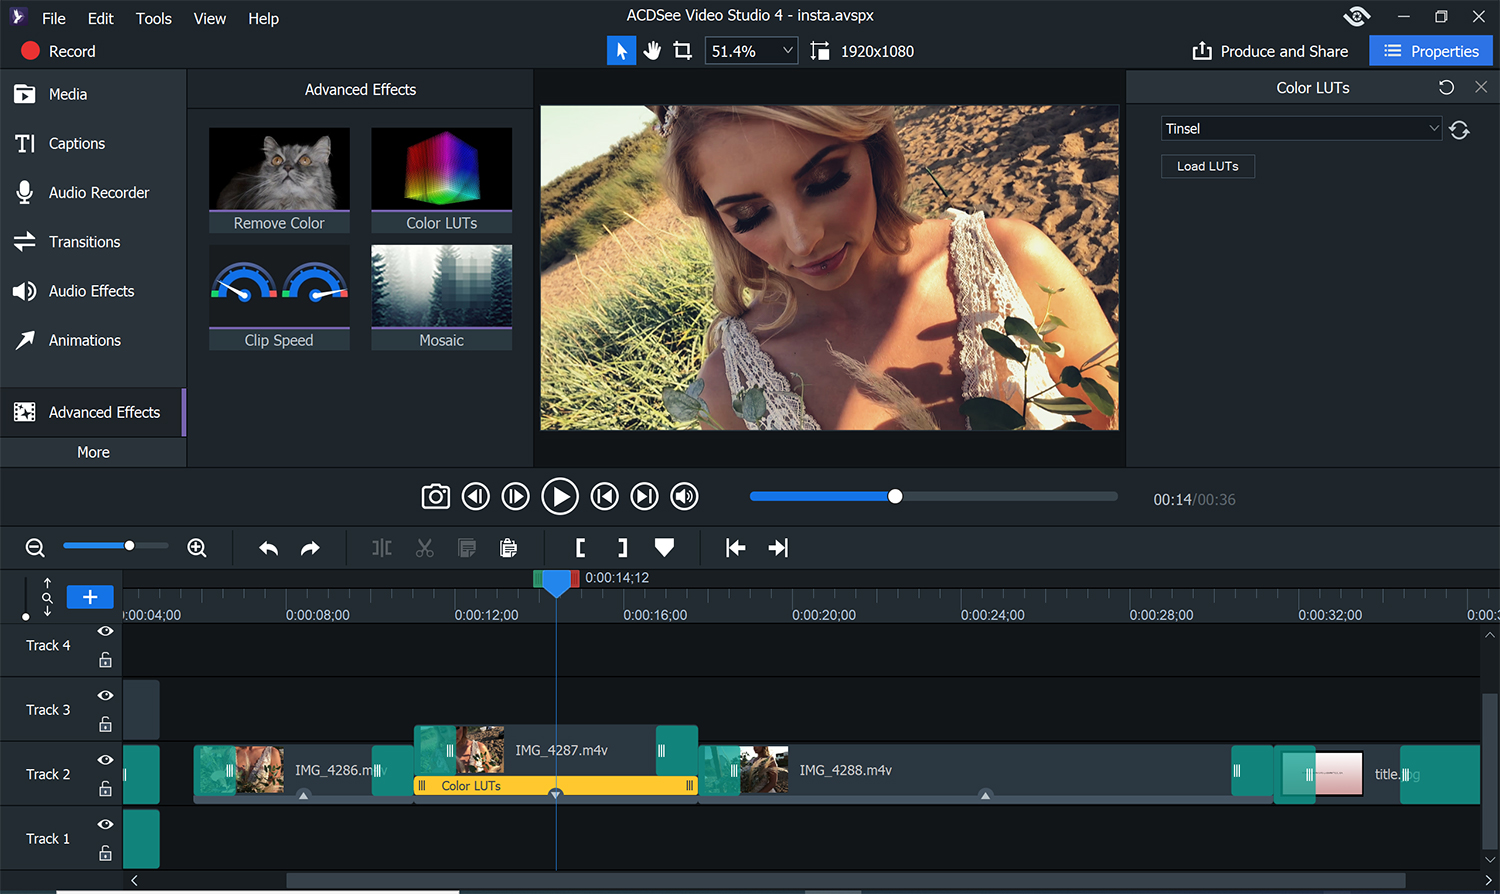 Image: You can add LUTS to color your footage. Start with a preset or upload your own. For the short...